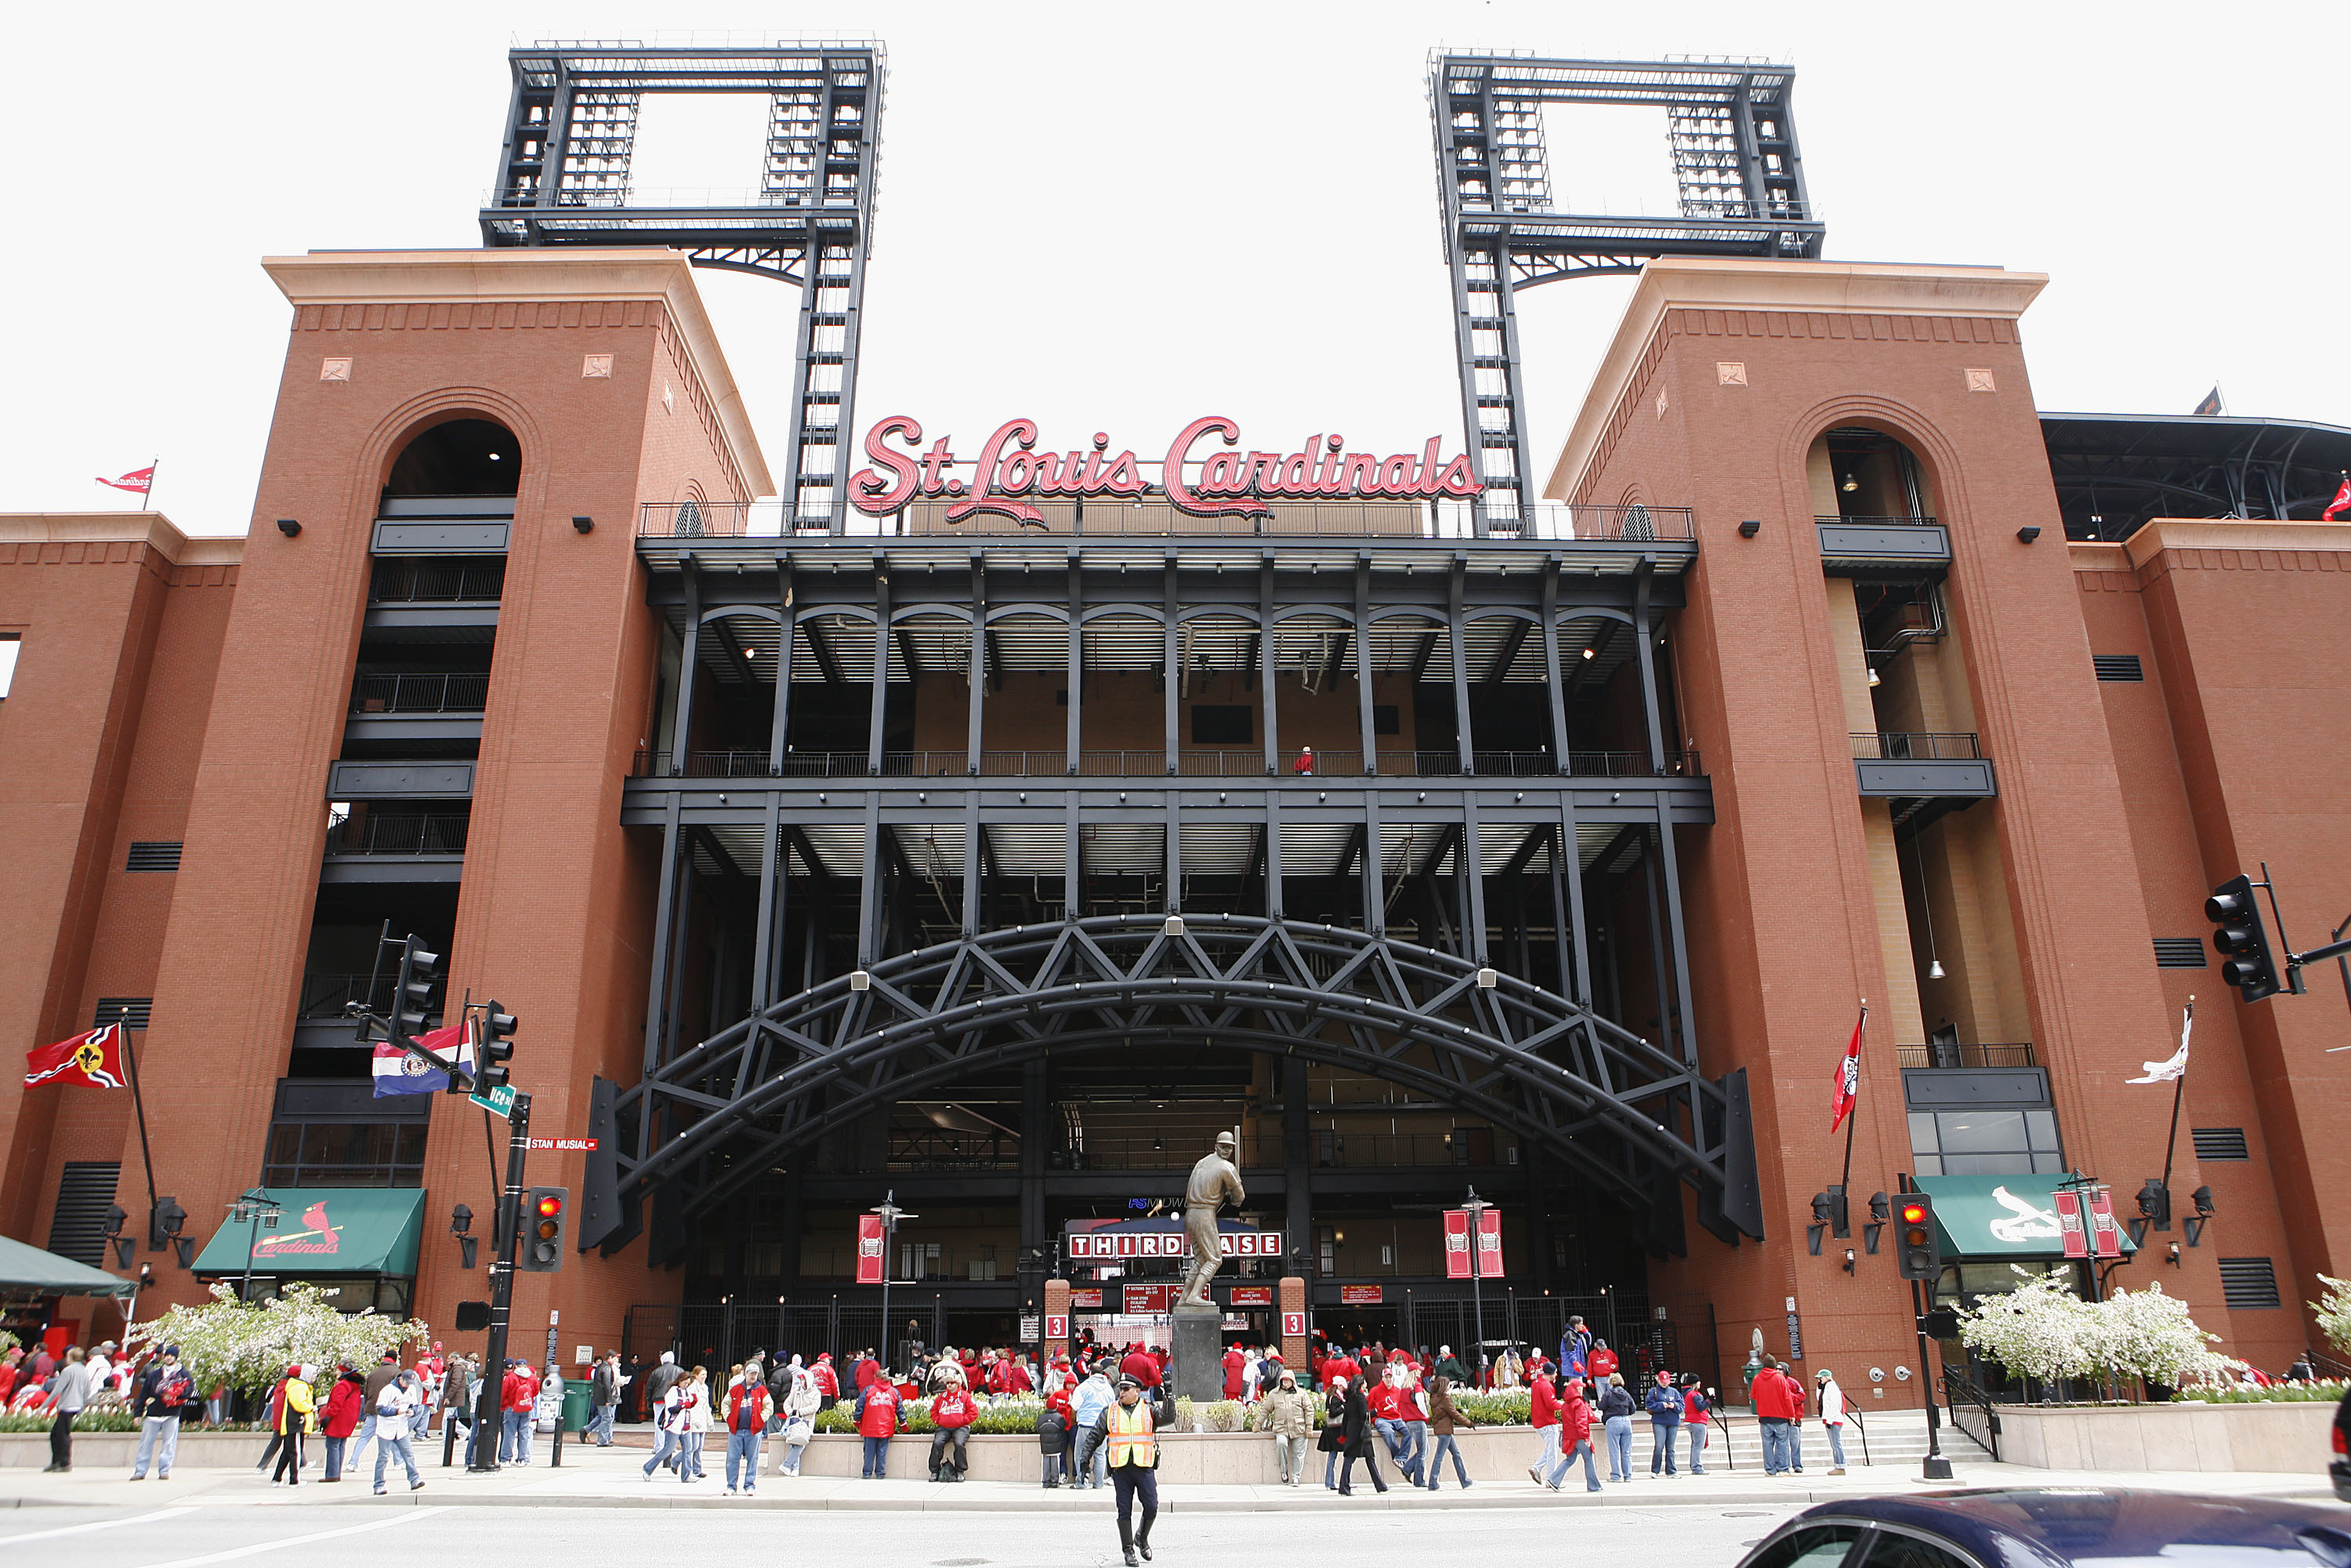 ST. LOUIS, MISSOURI - APRIL 6: Fans stand outside Busch Stadium prior to the opening day game between the St. Louis Cardinals and the Pittsburgh Pirates at Busch Stadium April 6, 2009 in St. Louis, Missouri.  (Photo by Dilip Vishwanat/Getty Images)